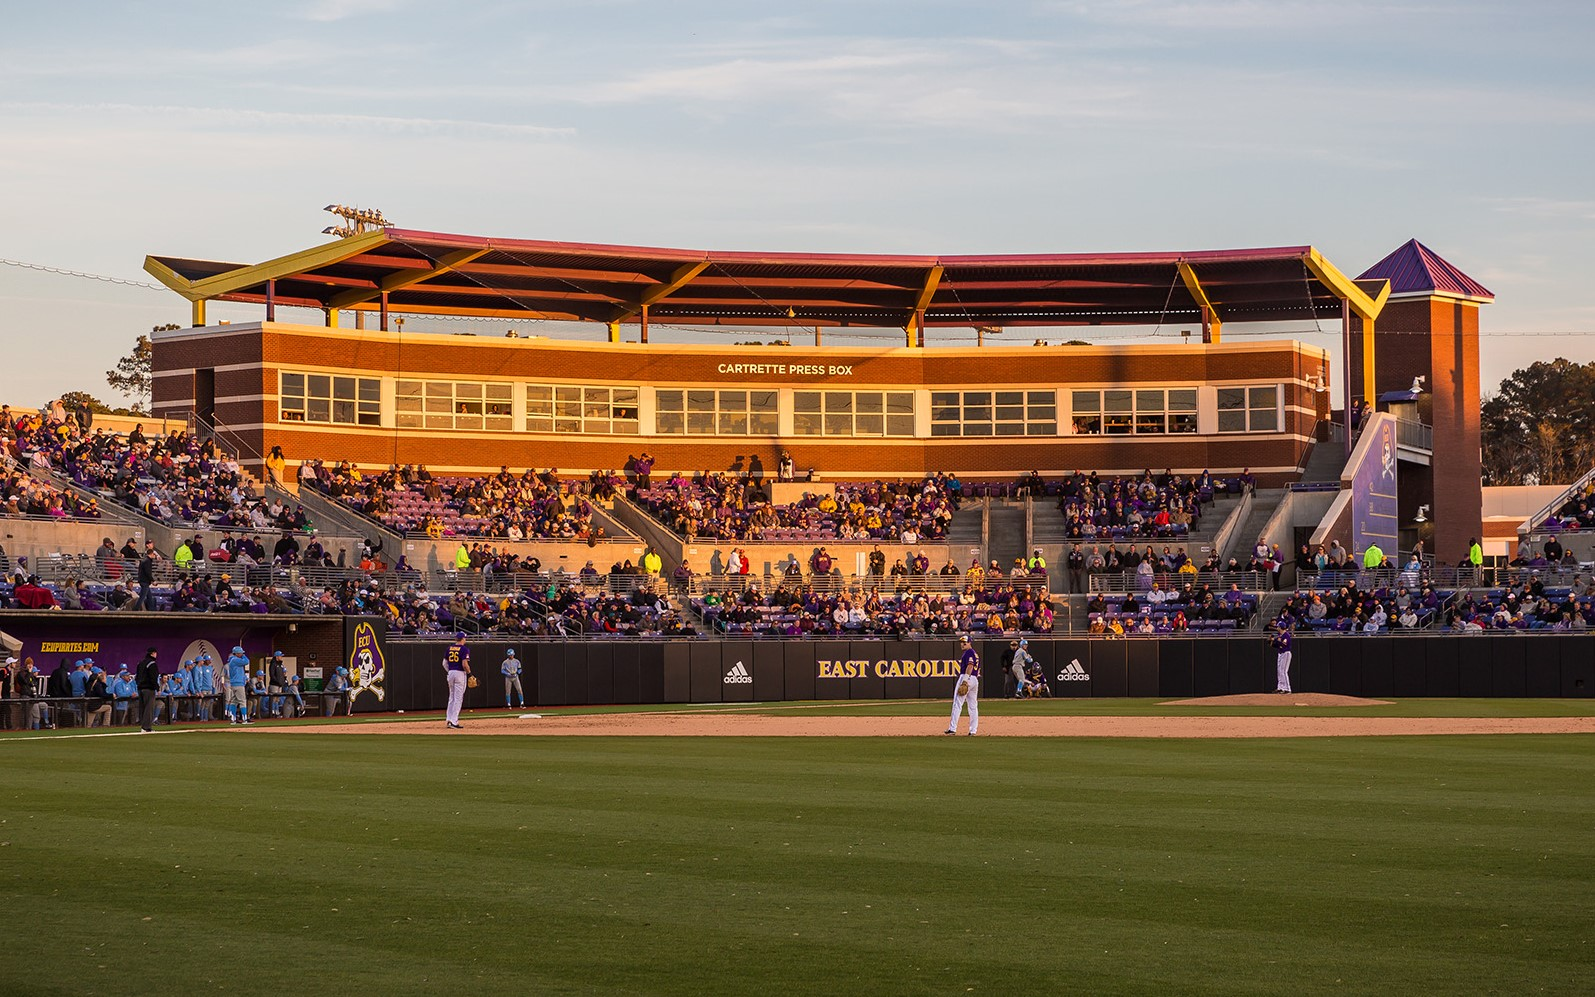 ecu to host virginia in fall exhibition on oct. 6th - east carolina